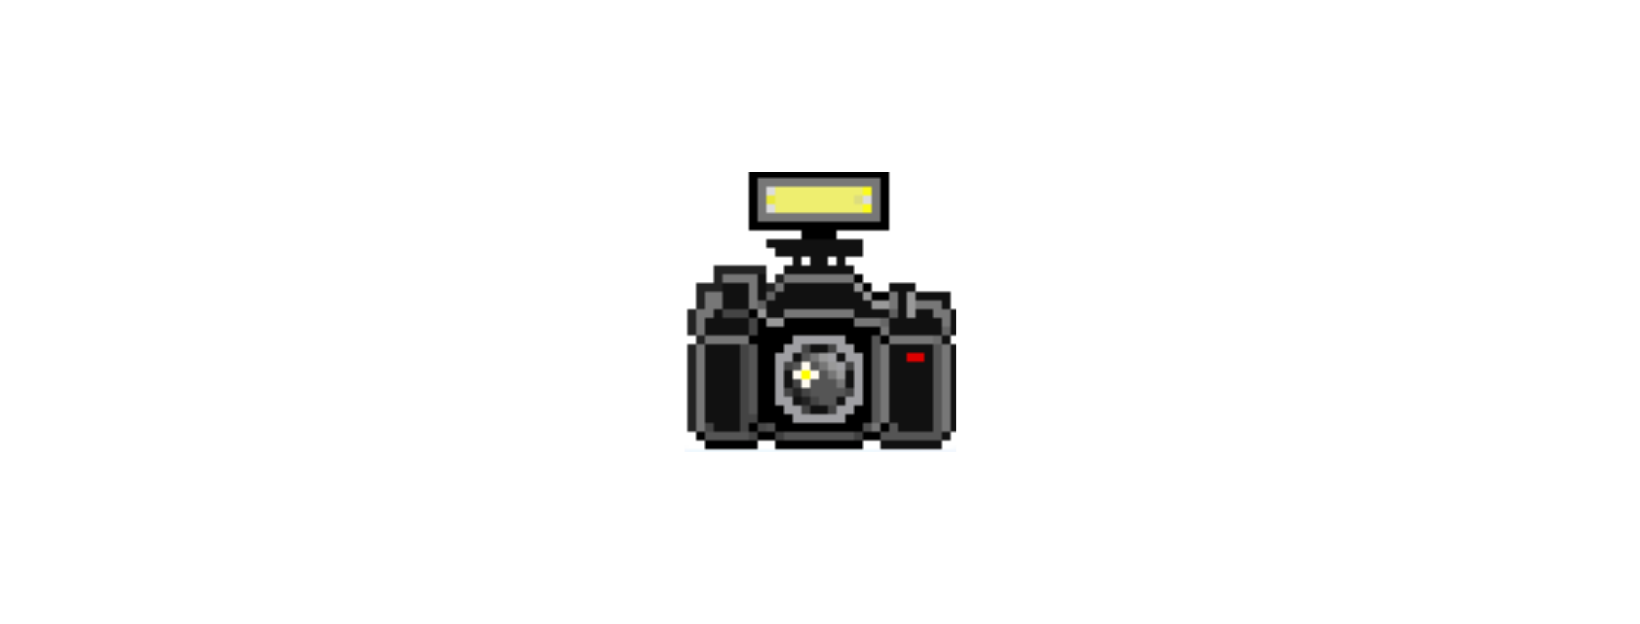 A pixelated black vintage camera with flash